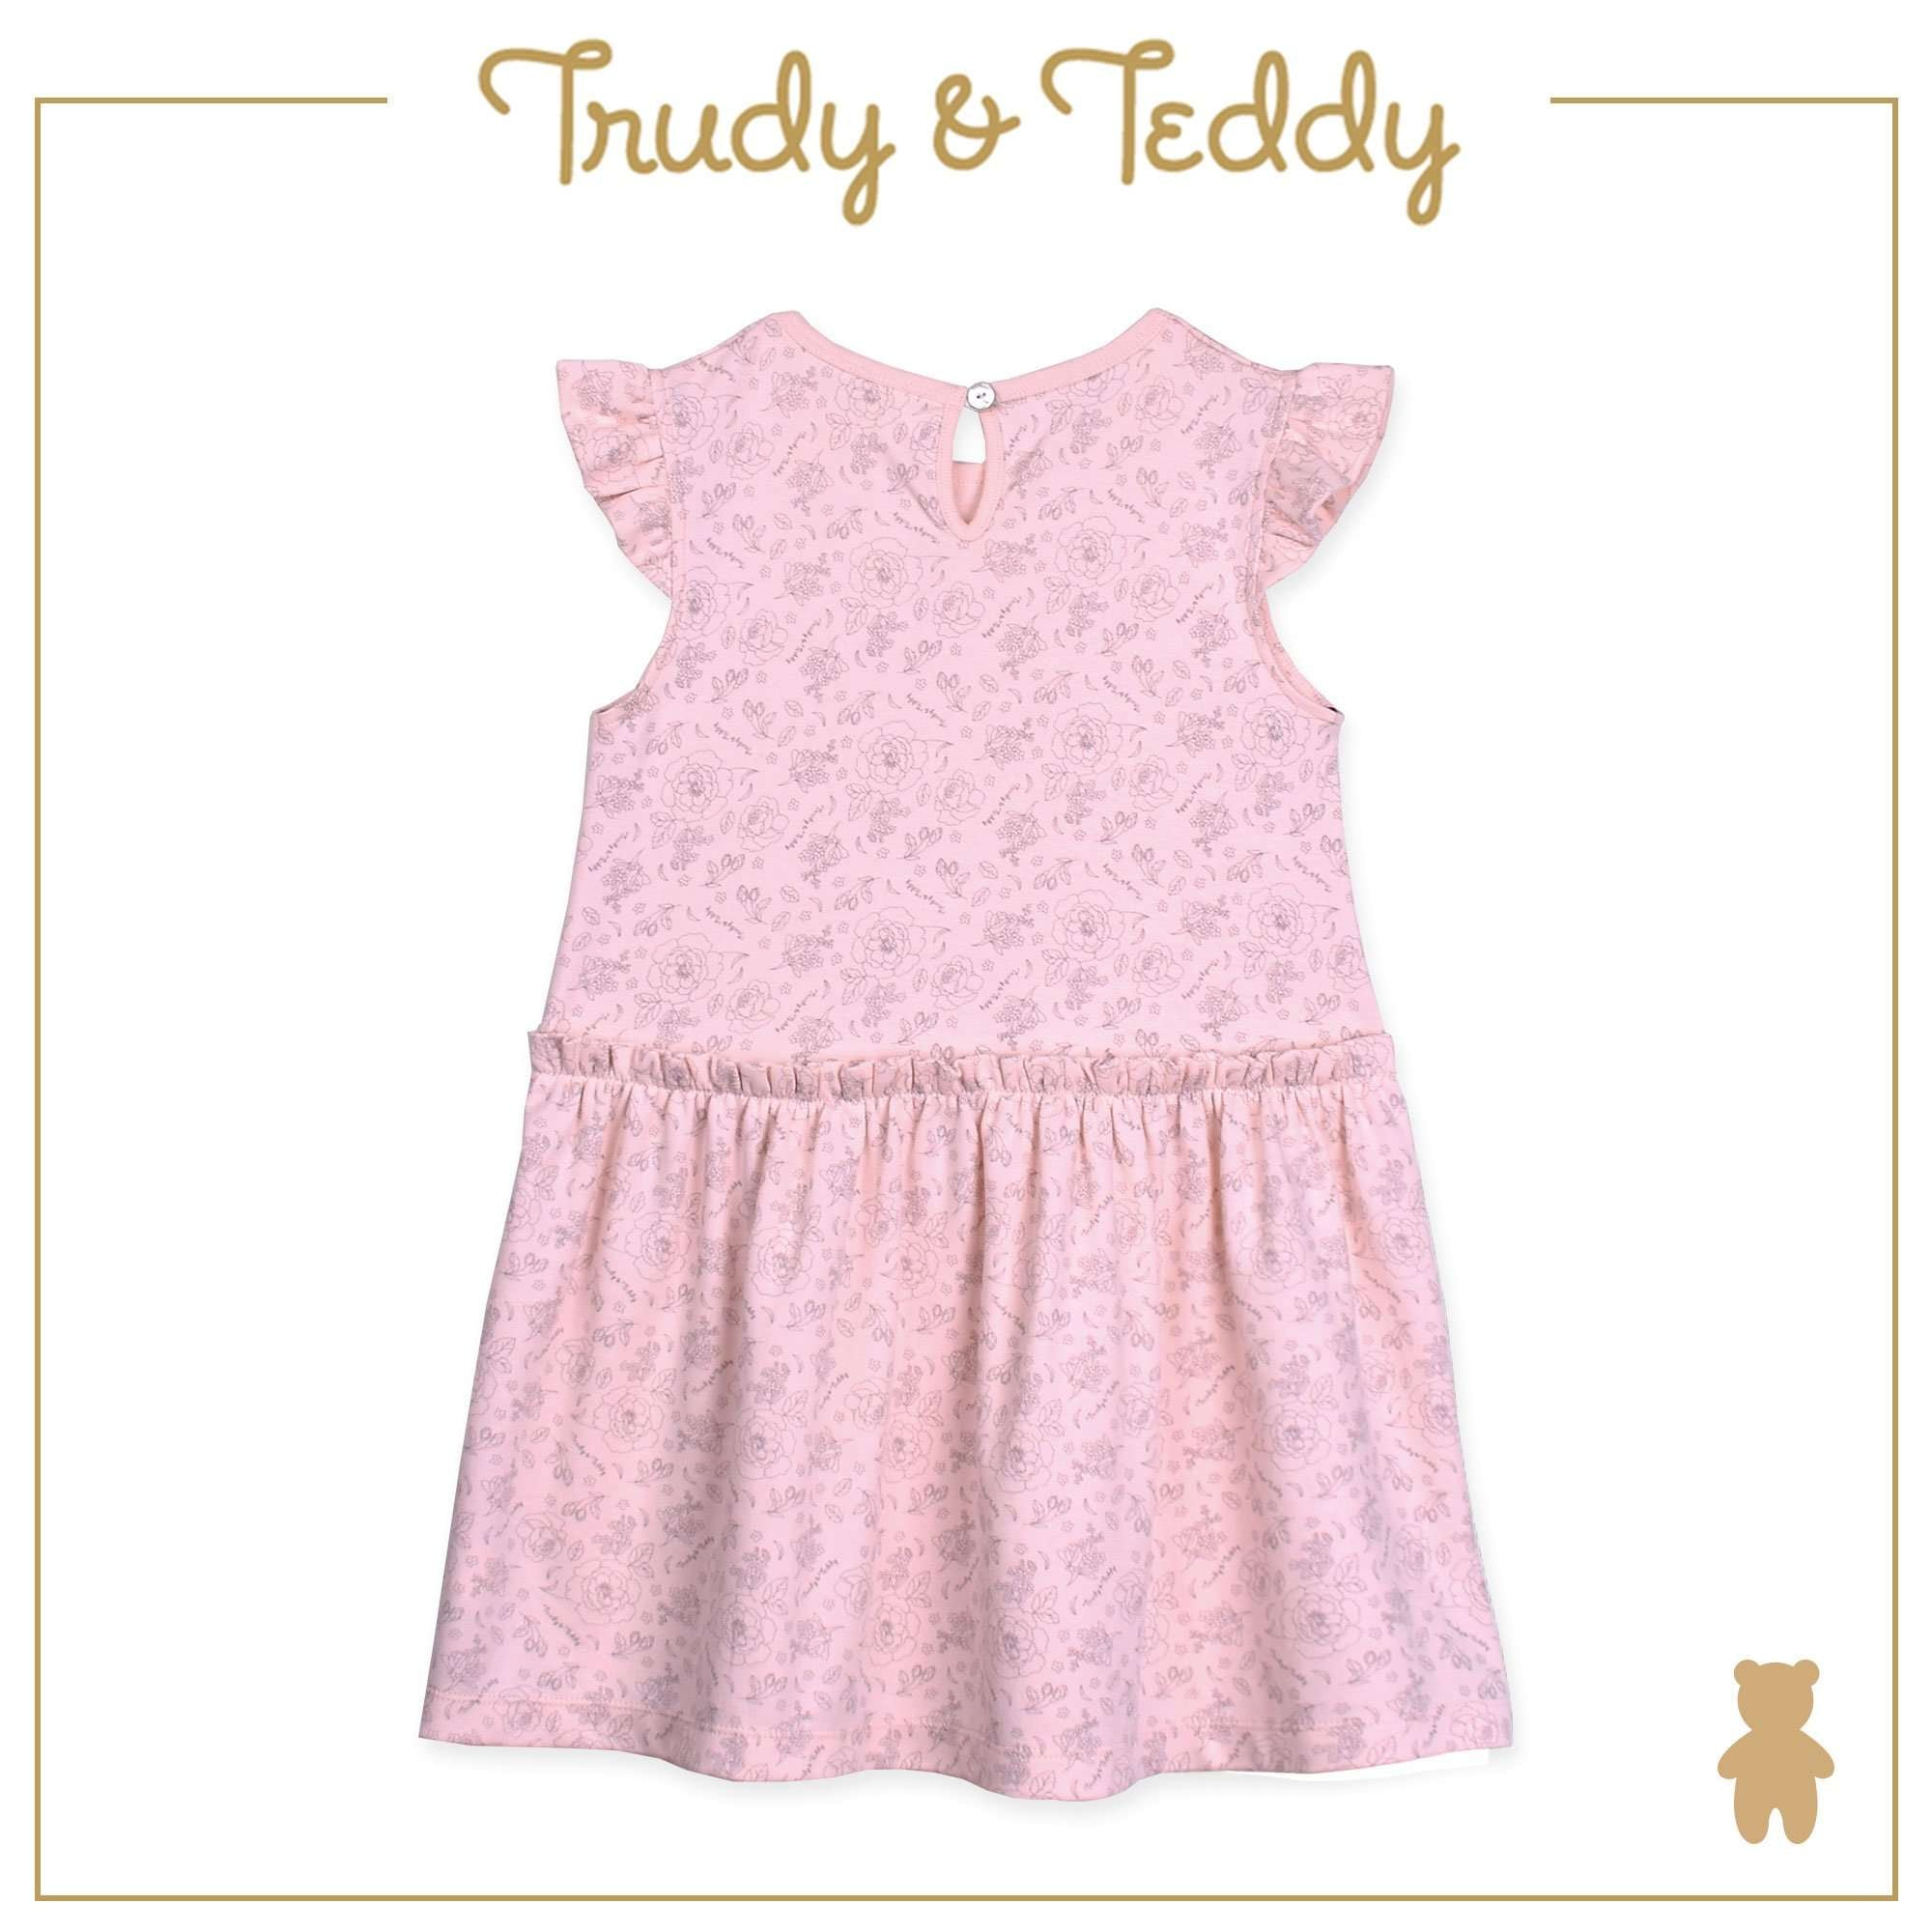 Trudy & Teddy Baby to Kid Girl Short Sleeve Dress With Hairband - Light Orange T925103-4814-E1 : Buy Trudy & Teddy online at CMG.MY